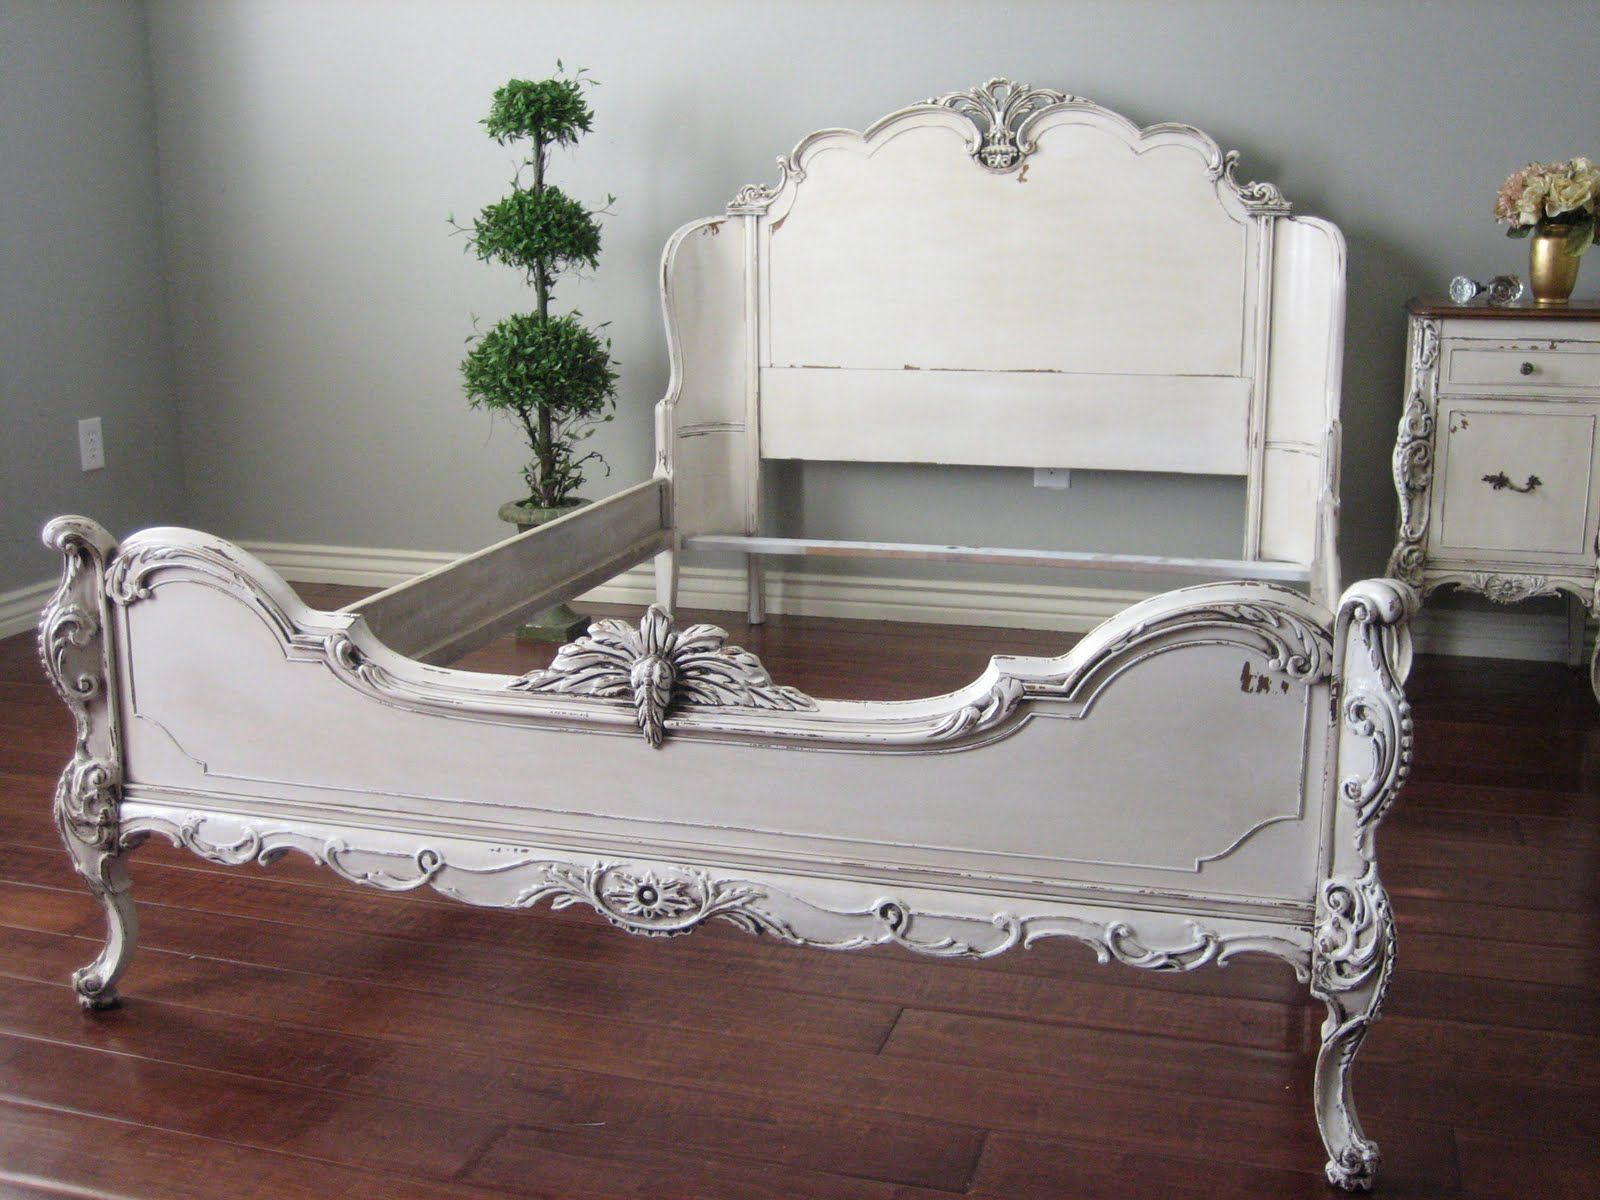 ornate bedroom furniture sets | includes: curved headboard